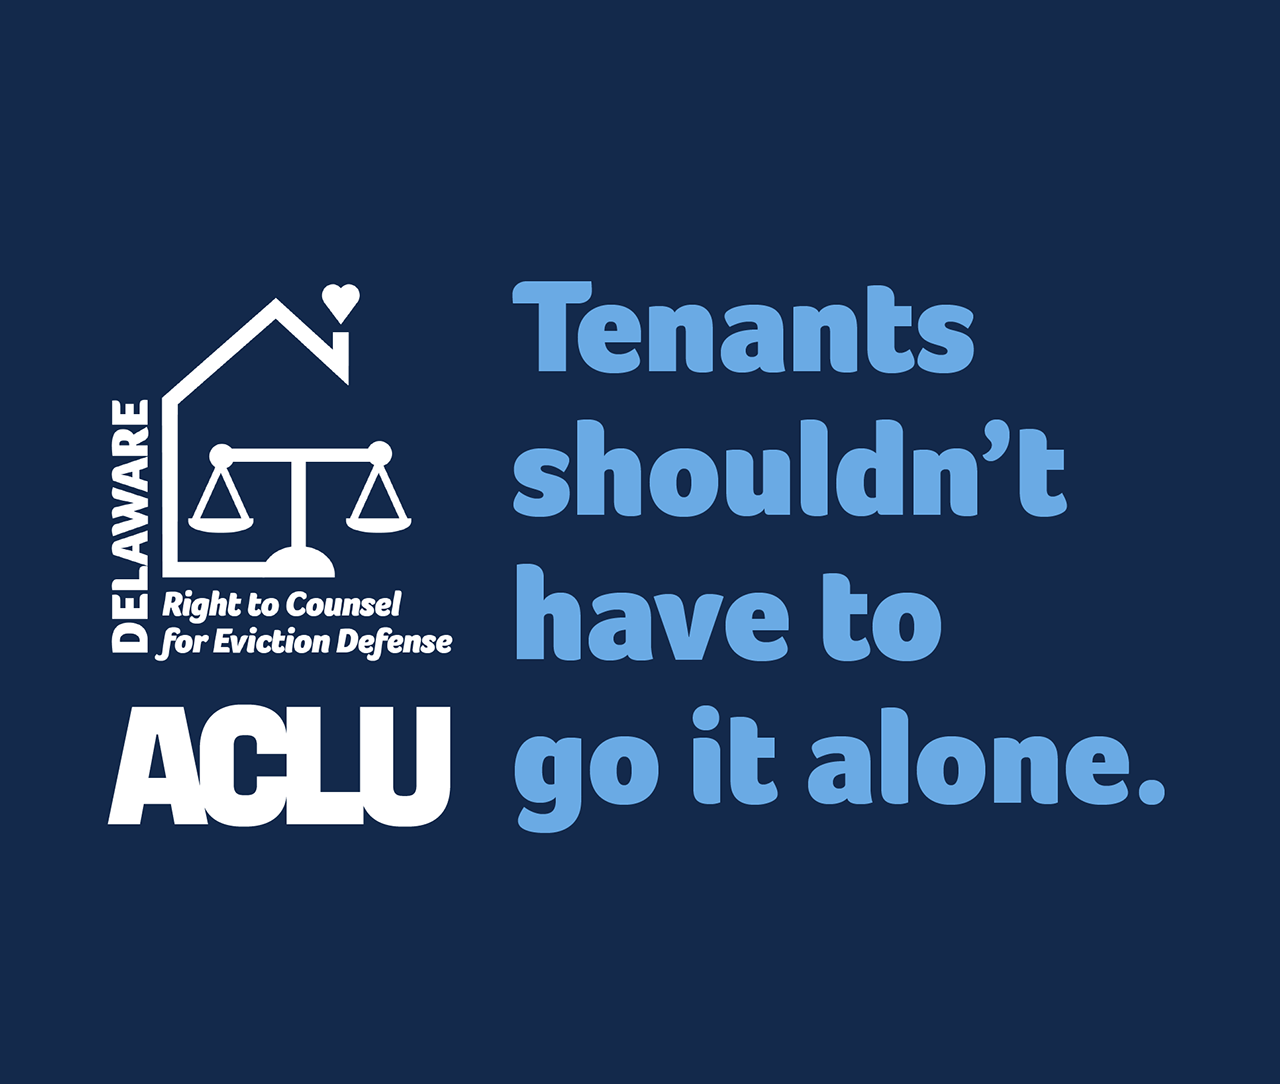 Tenants shouldn't have to go it alone